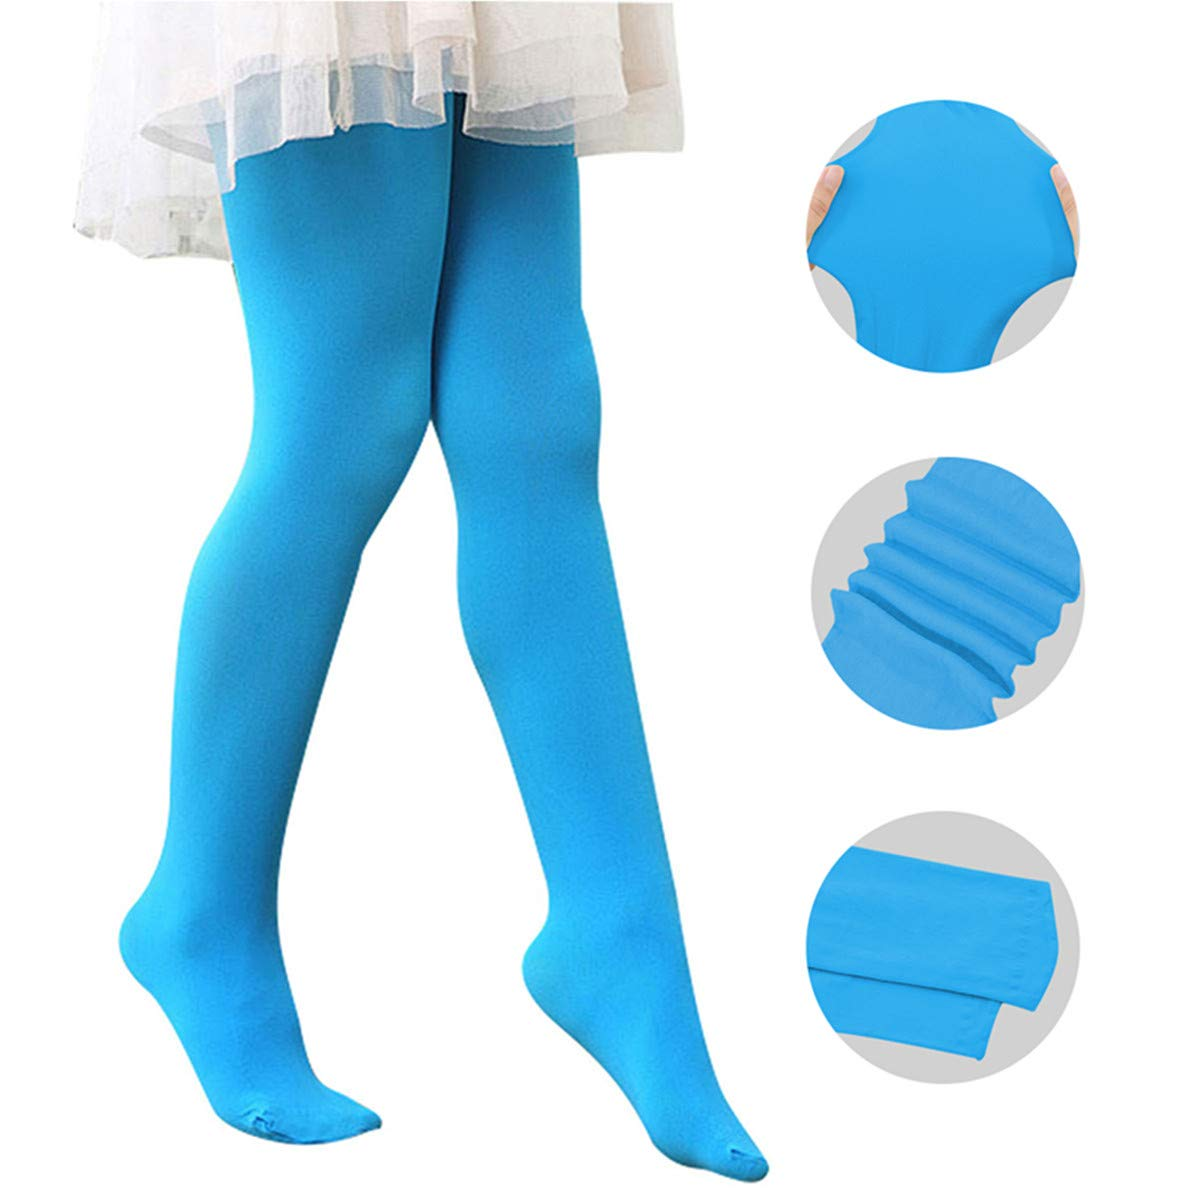 Century Star Ballet Dance Tights Footed Ultra-Soft Kids Super Elasticity School Uniform Tights For Girls YZCUDS1399P0000SN